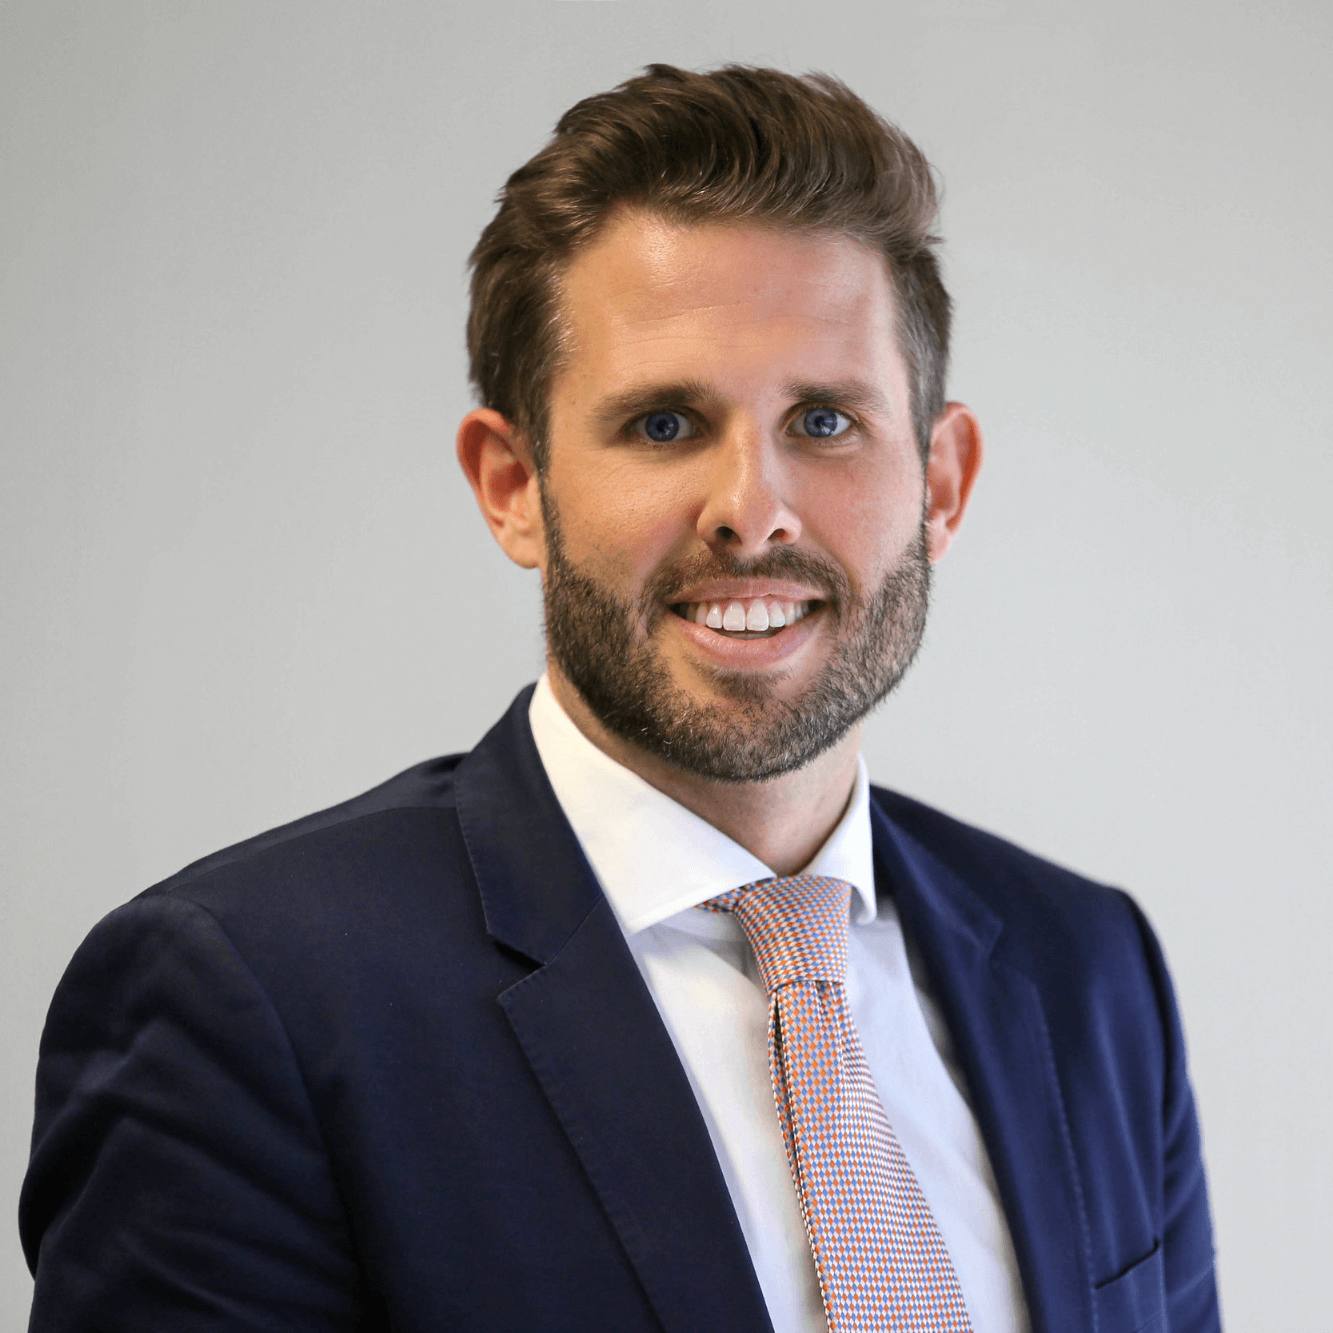 Lachlan Crombie - Co-Founder, Board Director